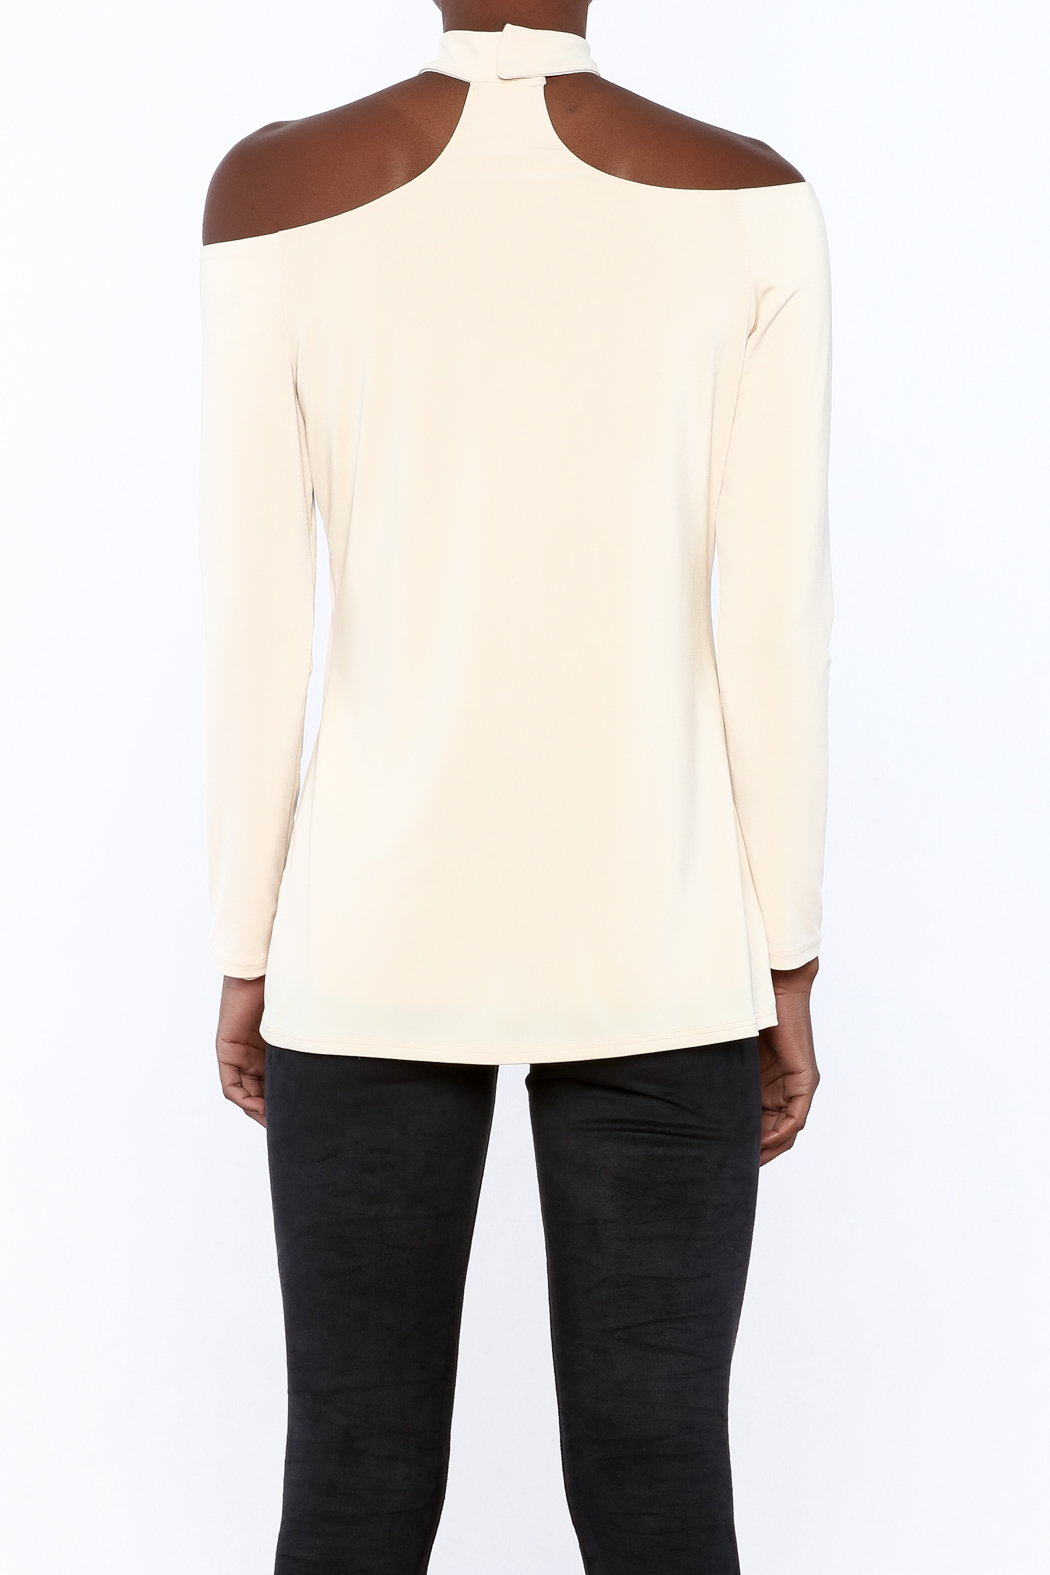 Lisa & Lucy Oyster Choker Top - Back Cropped Image